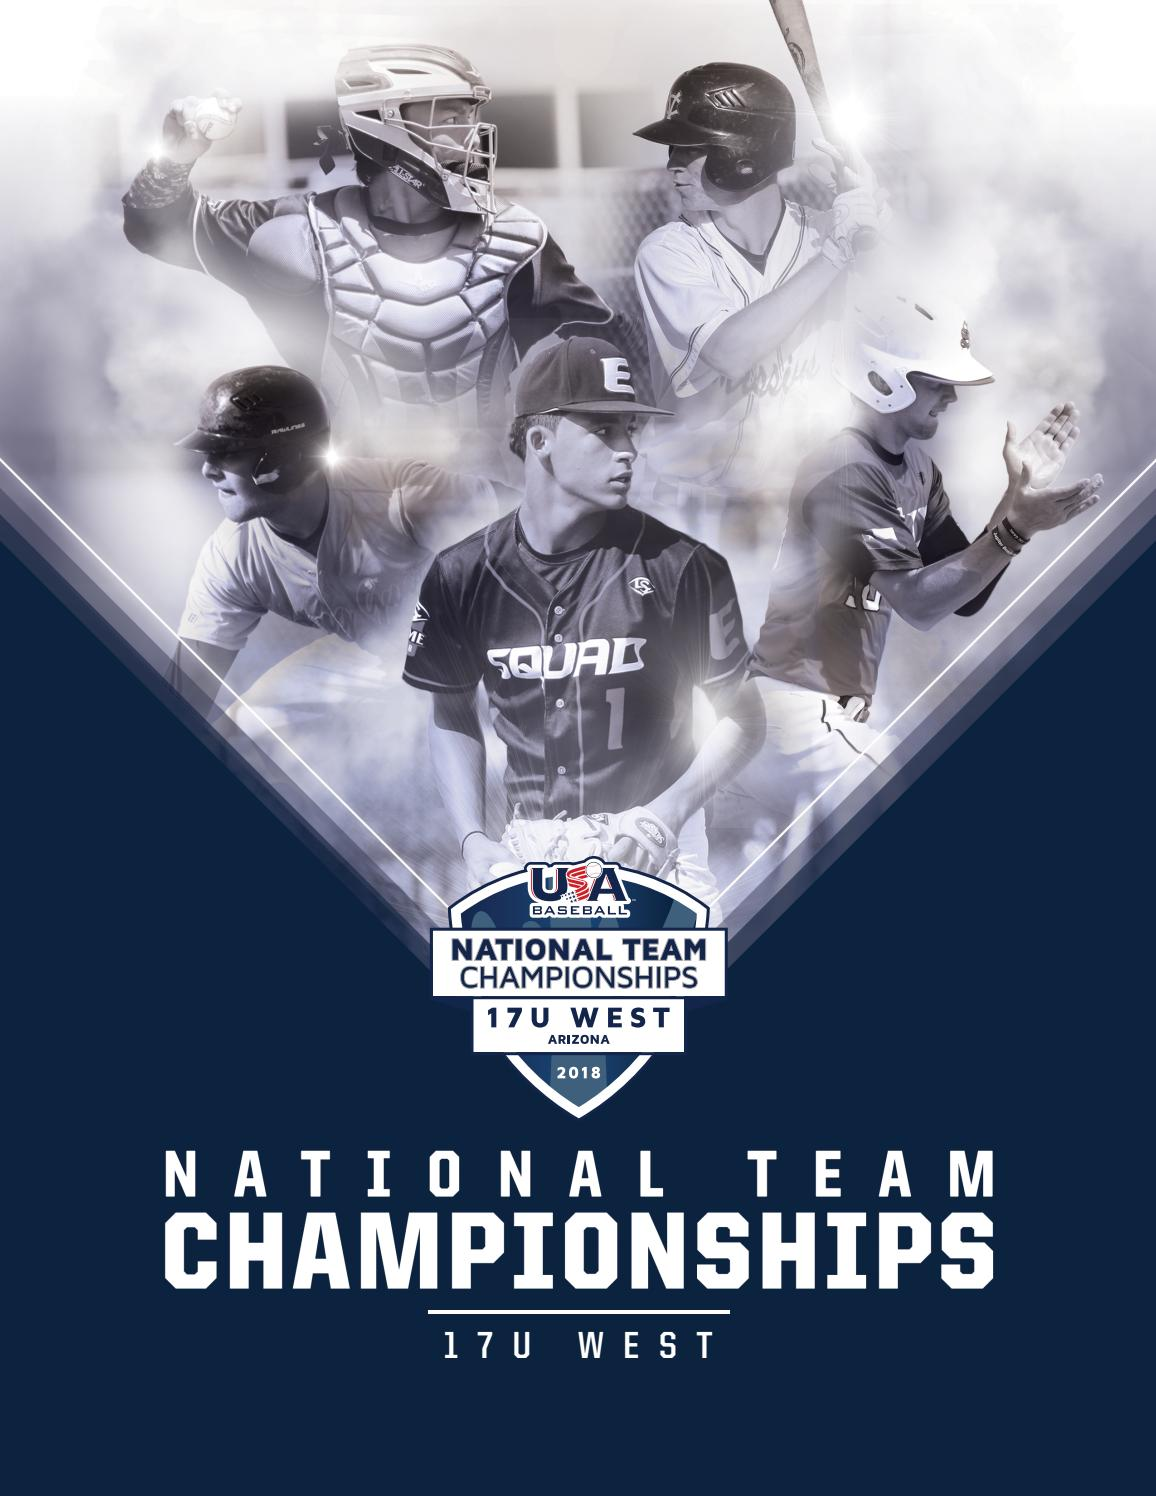 2018 National Team Championships Program - 17U West by USA